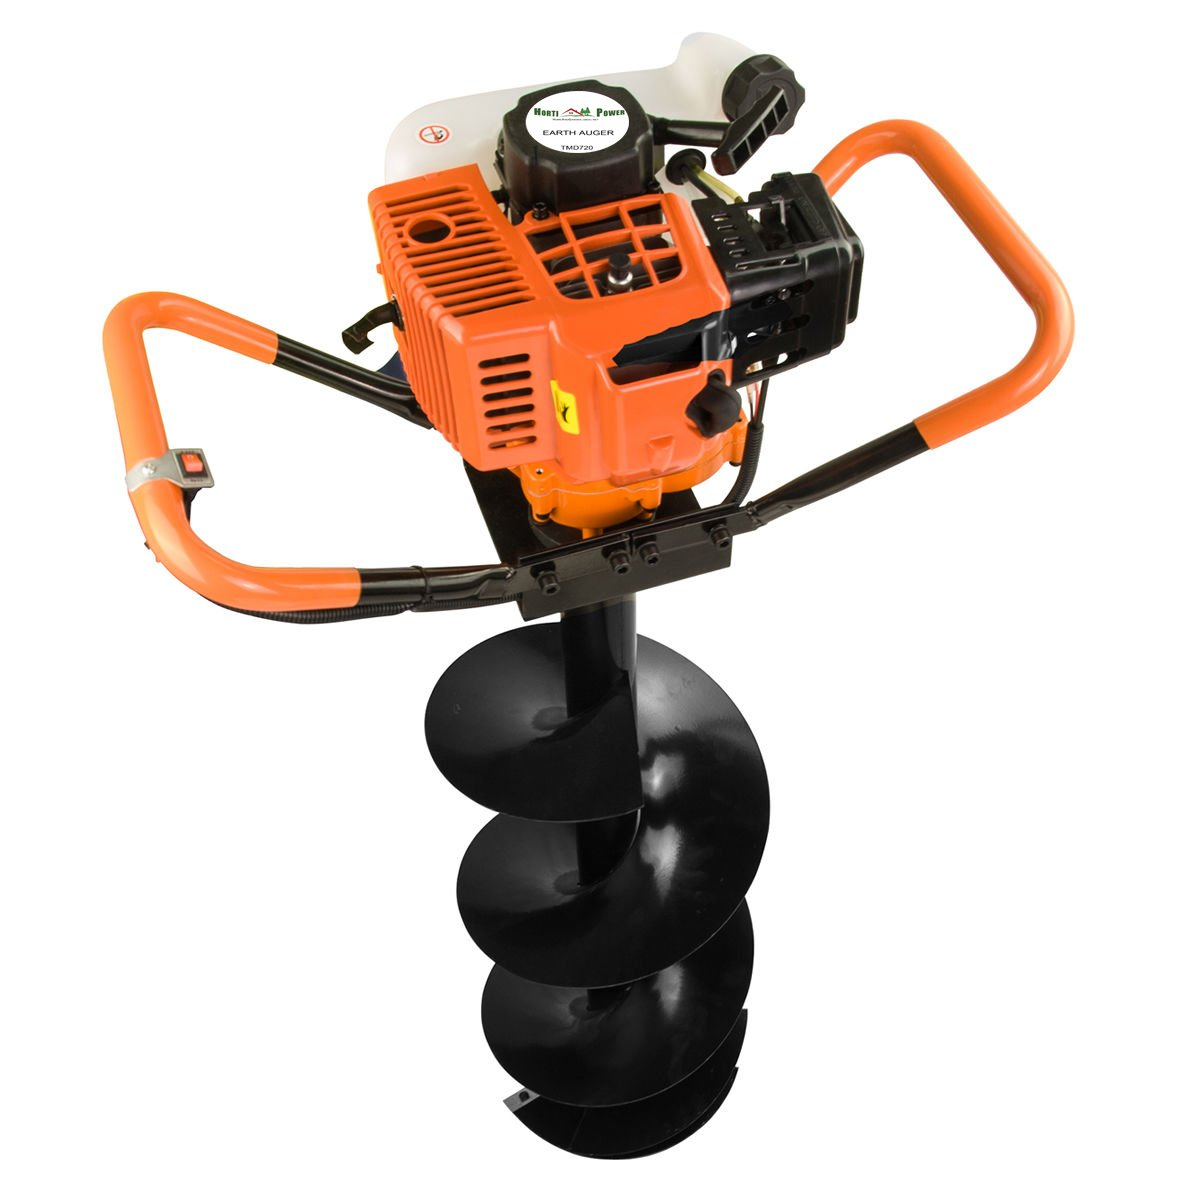 Earth Auger Post Pole Borer 82 CC 3 Drills Bits 100 200 300 4'' 8'' 12'' Ultrasharp with extensions Professional